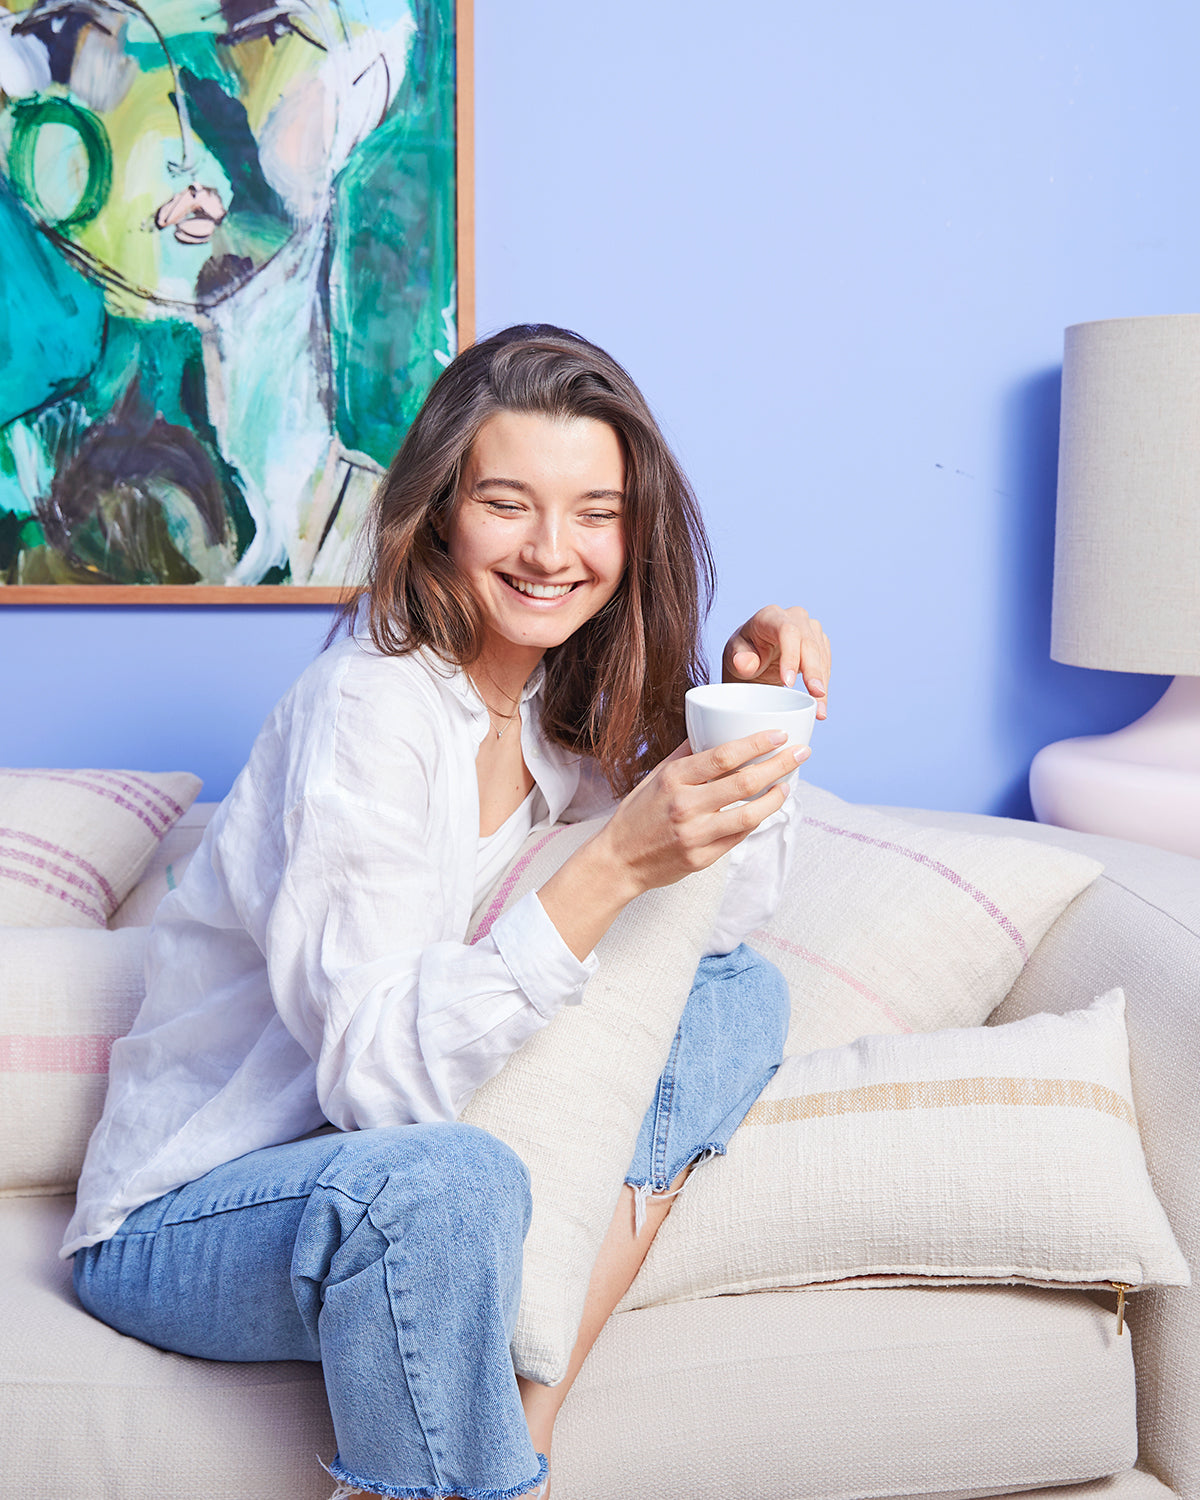 Woman laughing holding cup of coffee on a couch filled with pillows